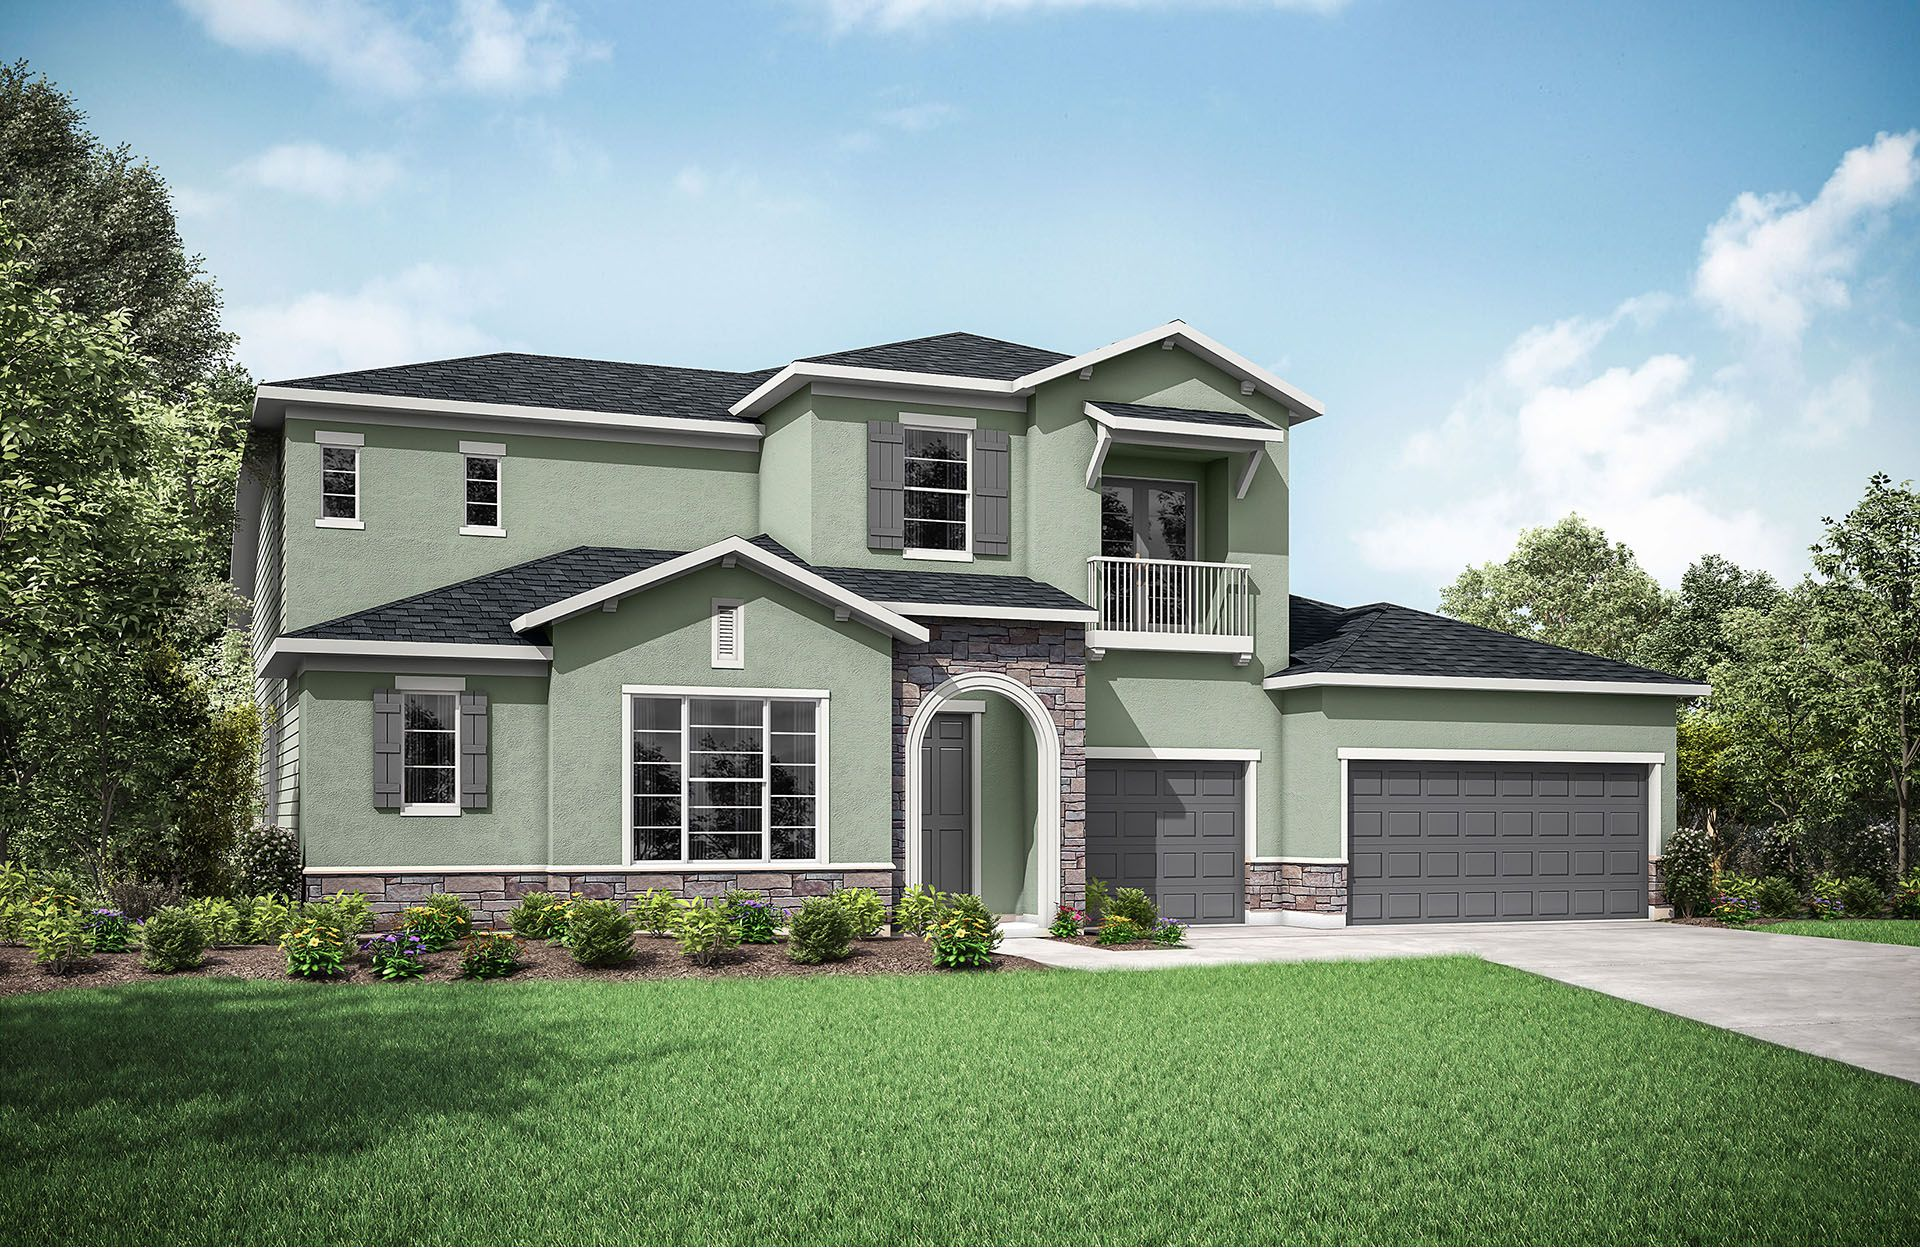 Single Family for Active at Eagle Landing - Jameson 407 Kirkland Court Orange Park, Florida 32065 United States